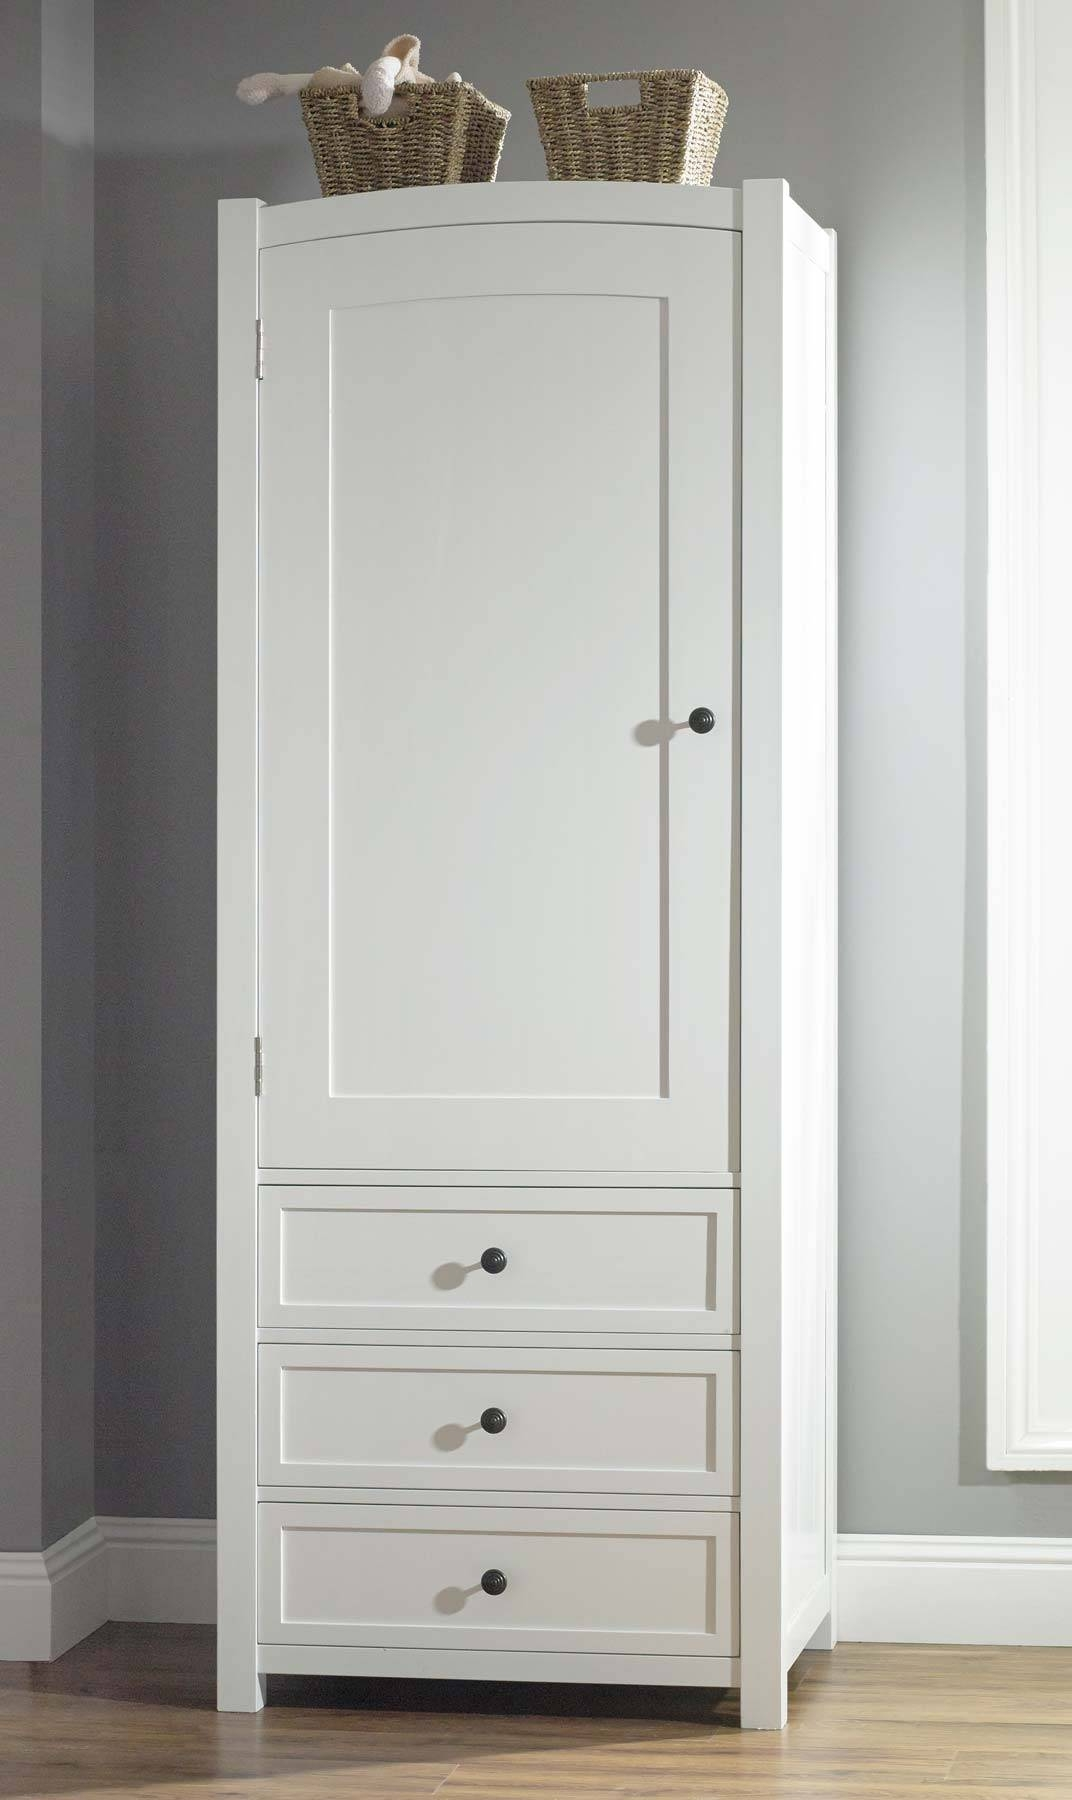 Wardrobe : 39 Formidable White Wooden Wardrobe With Drawers Photo inside White Wood Wardrobes With Drawers (Image 11 of 15)